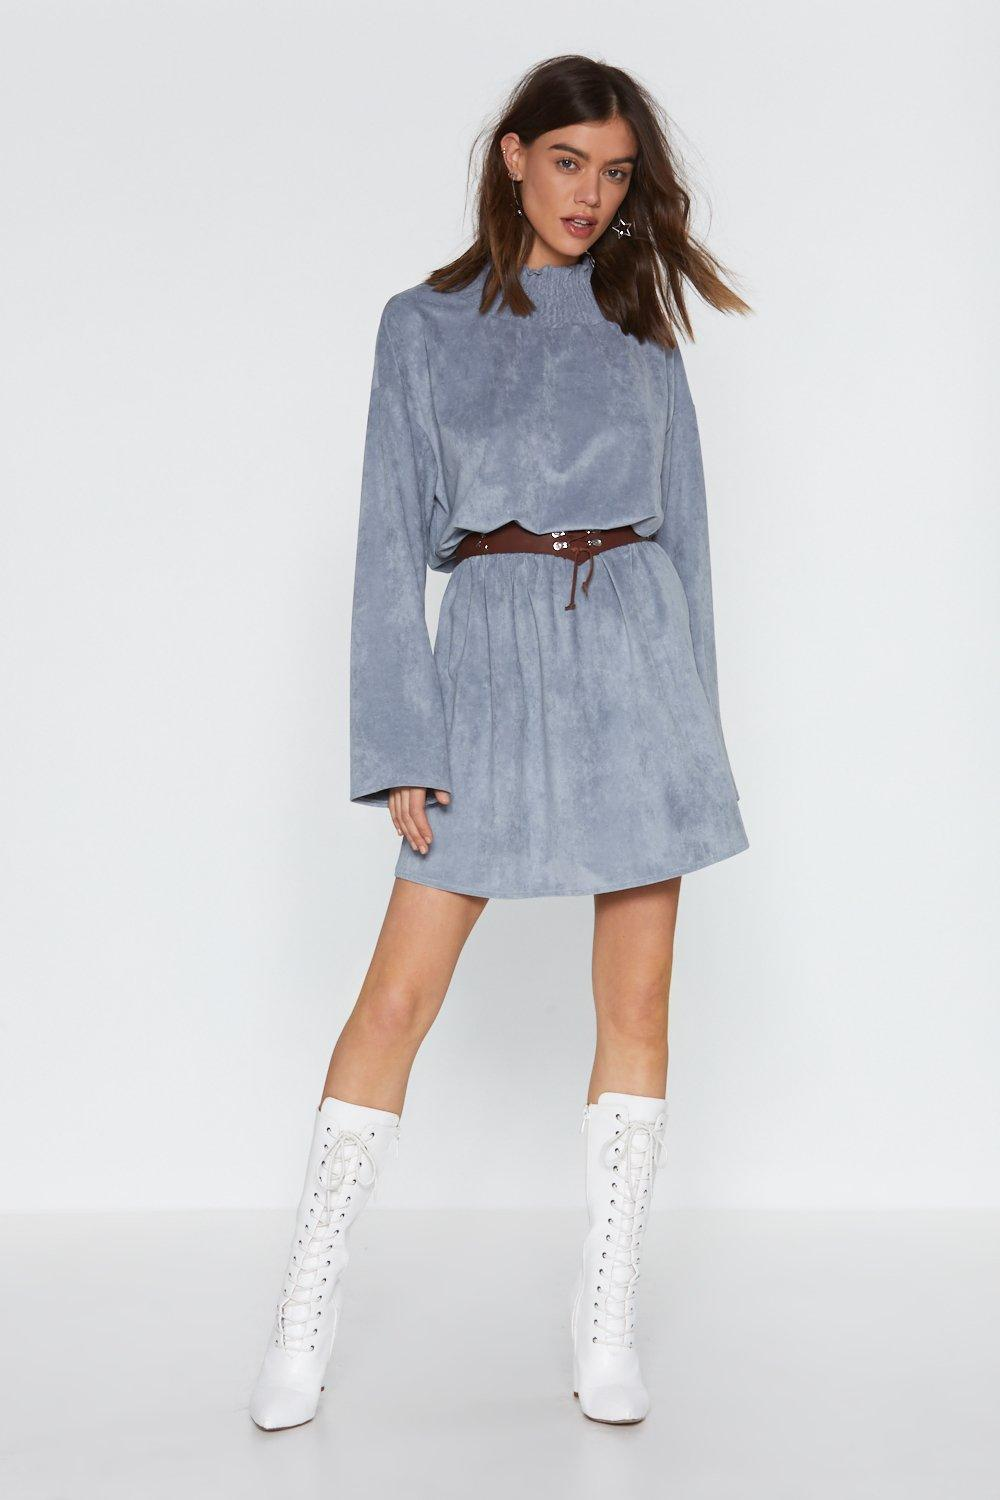 Keep A Secret Faux Suede Mini Dress by Nasty Gal